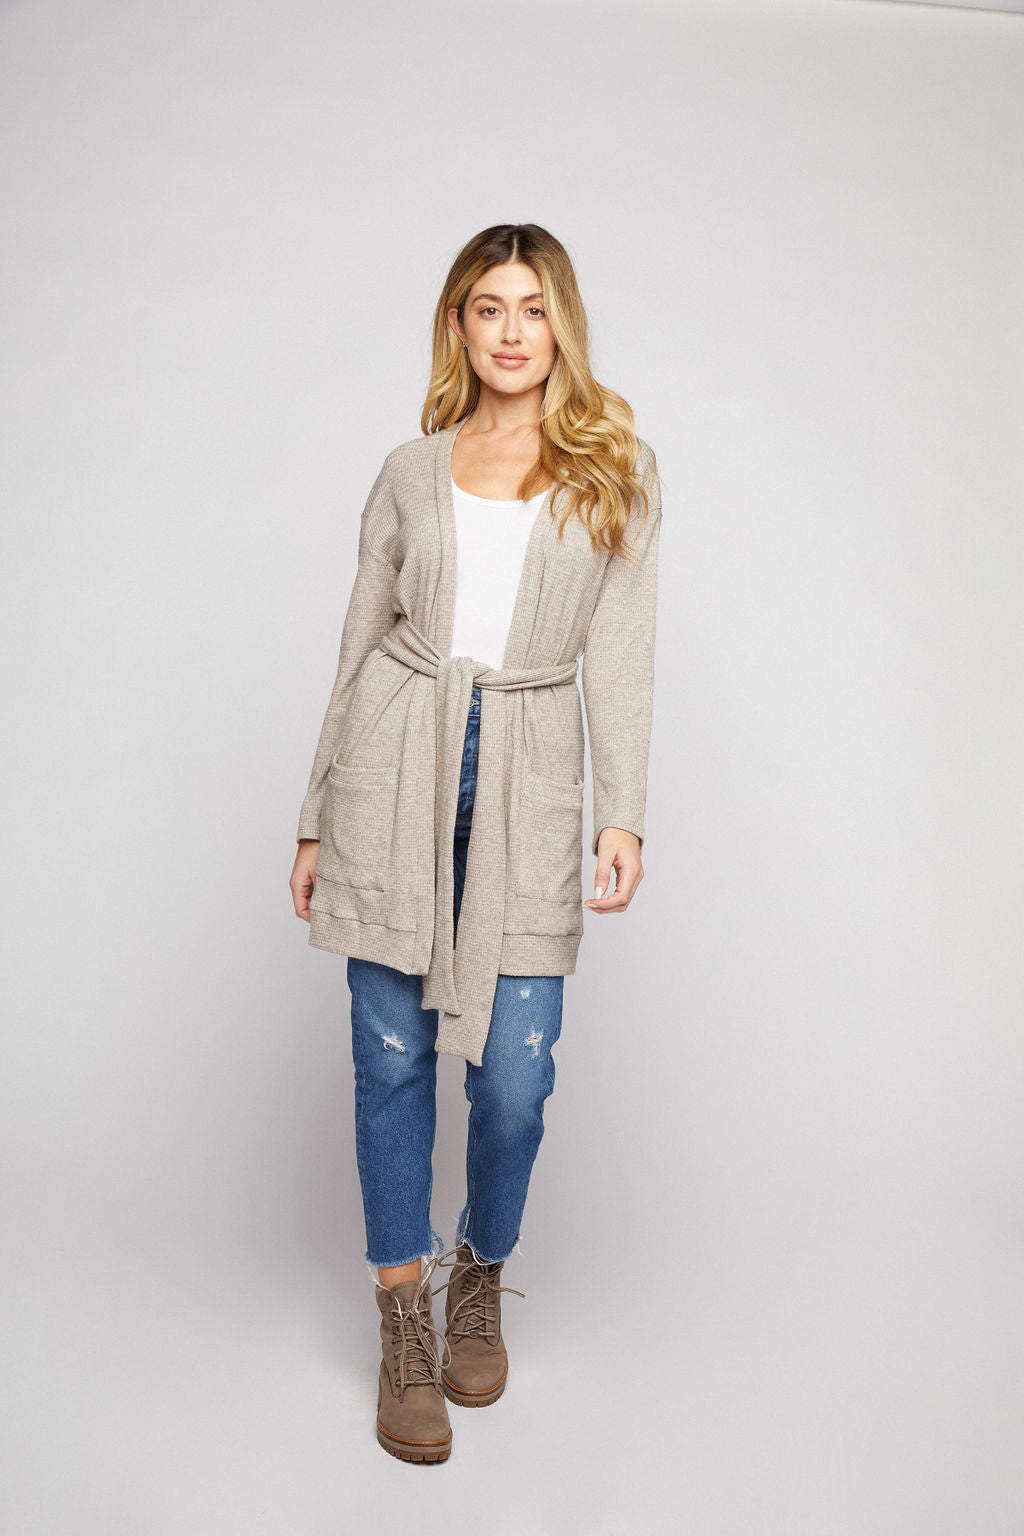 Belted Cardigan - Oatmeal